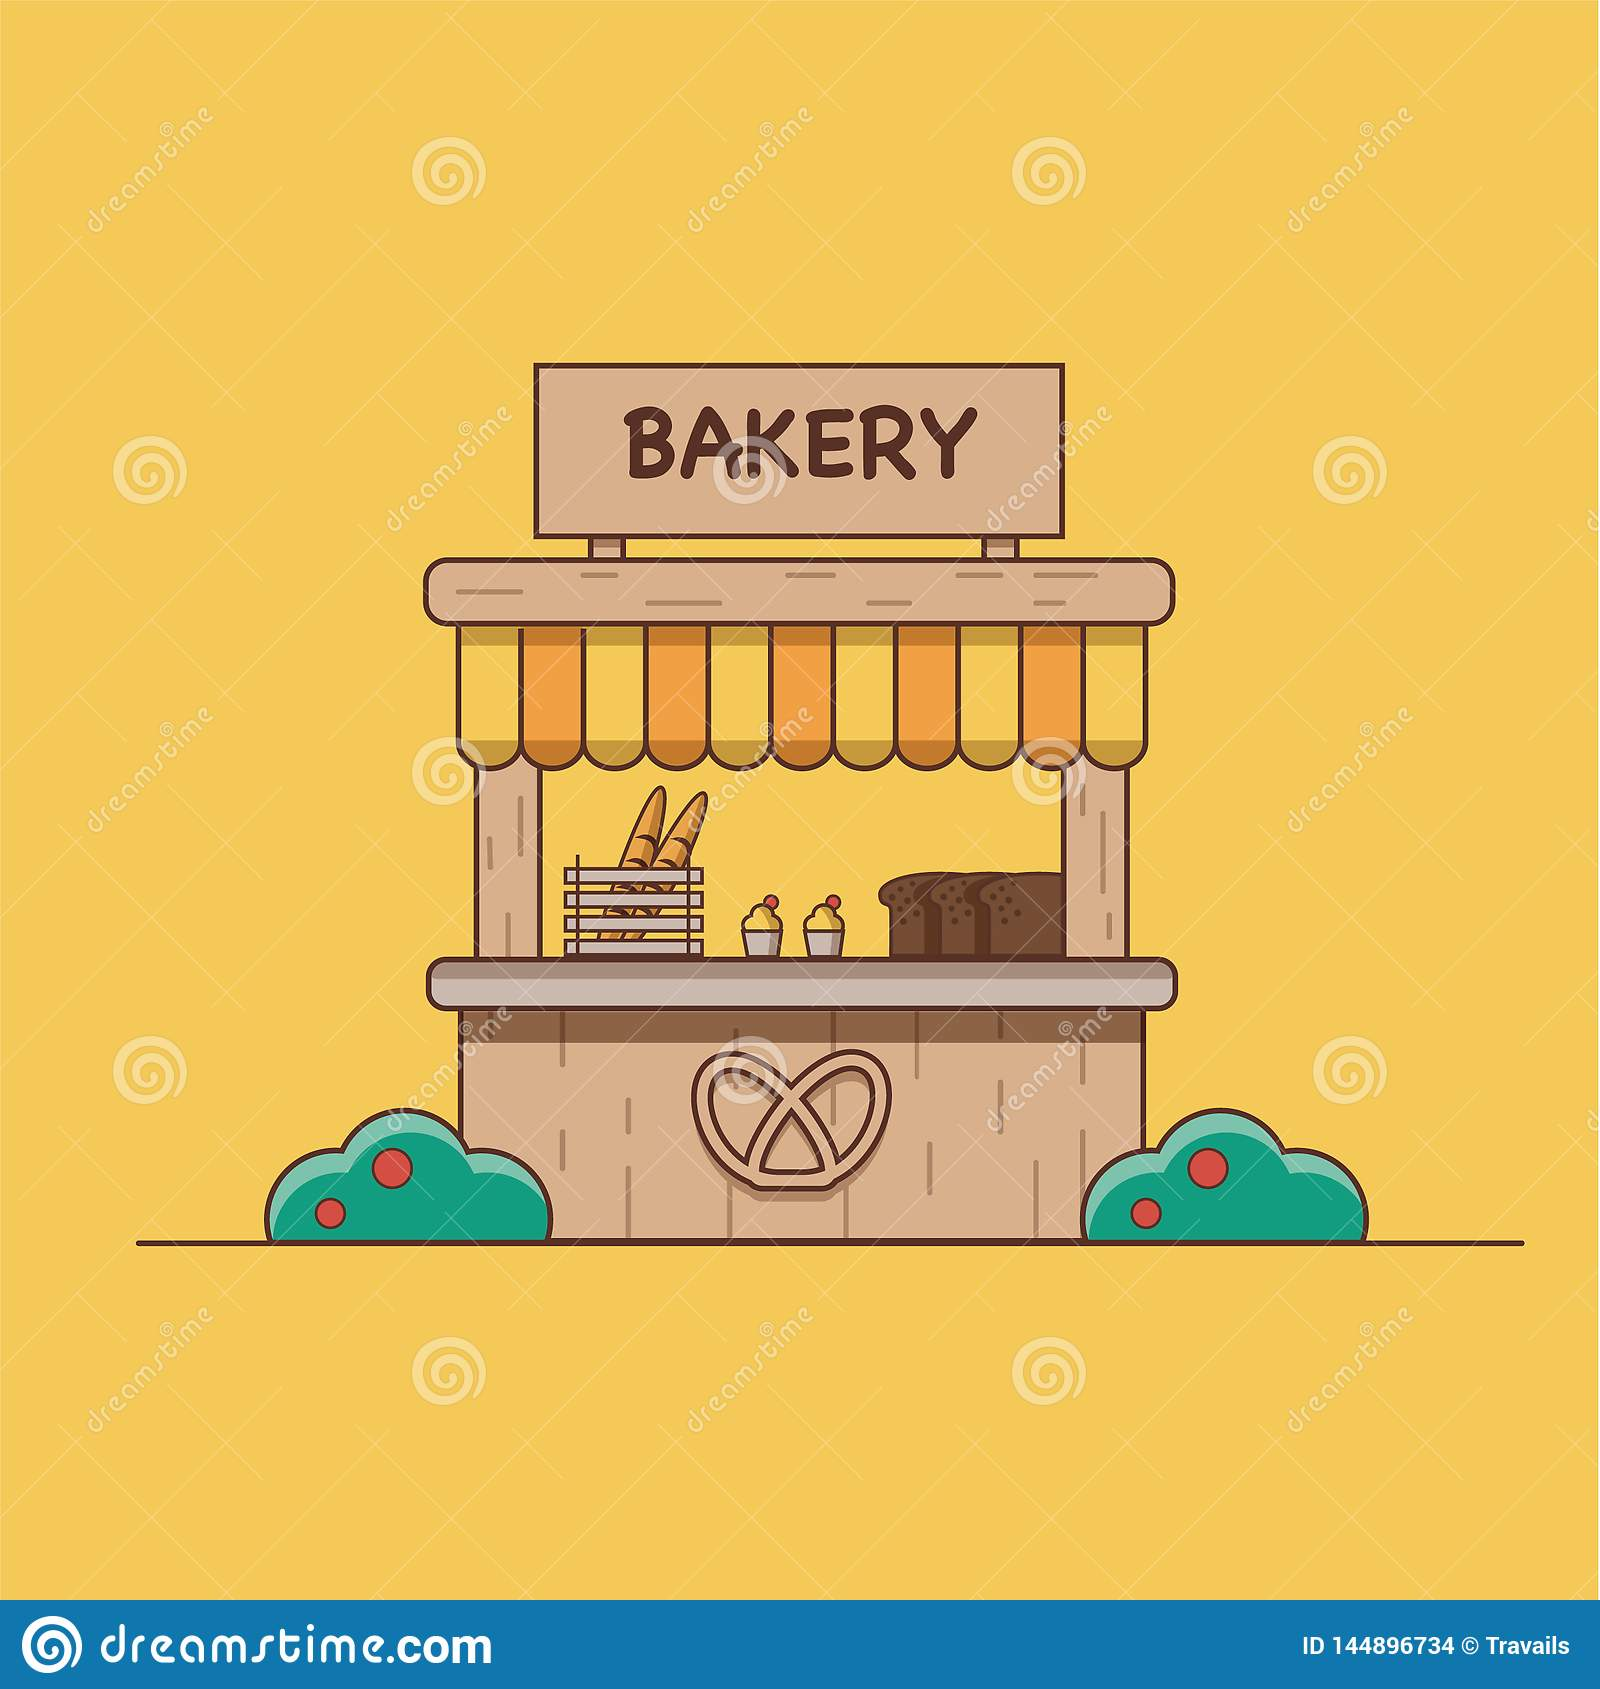 Illustration de vecteur qui dépeint une boulangerie sur un fond orange